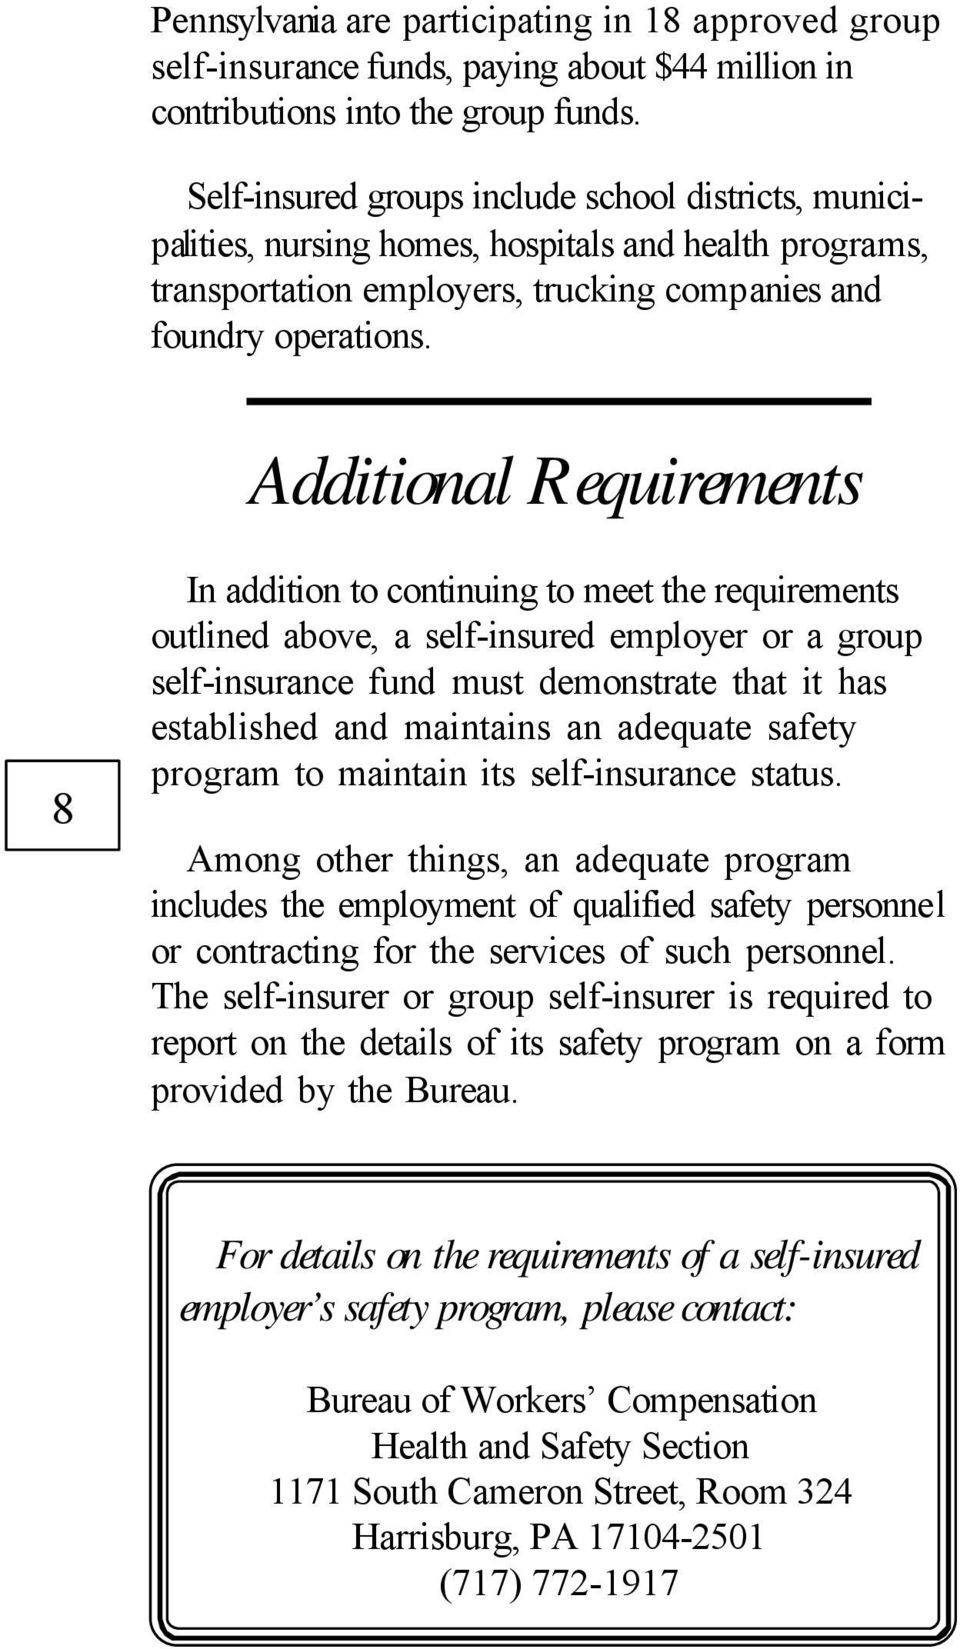 Additional Requirements 8 In addition to continuing to meet the requirements outlined above, a self-insured employer or a group self-insurance fund must demonstrate that it has established and